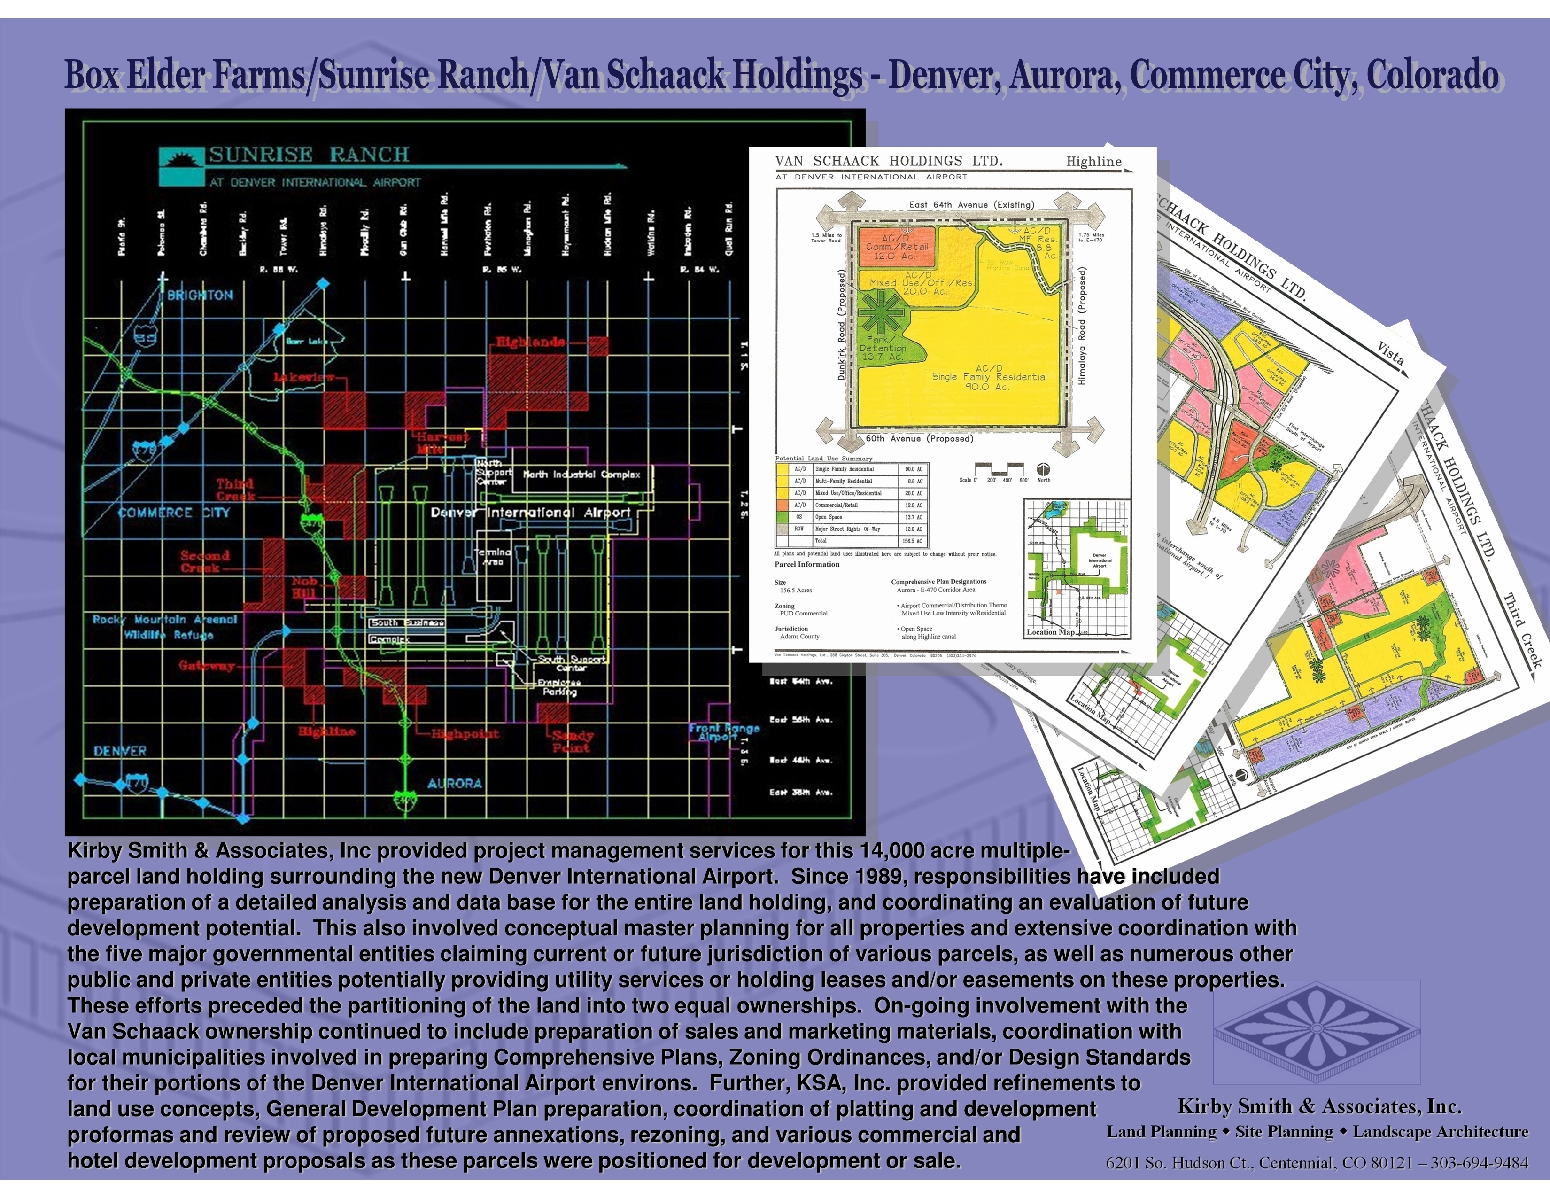 KSA, Inc provided project management services for this 14,000 acre multiple-                                 parcel land holding surrounding the Denver International Airport.  Responsibilities included preparation of a detailed analysis and data base for the entire land holding, and coordinating an evaluation of future development potential.  This involved conceptual master planning for all properties and coordination with the five governmental entities with current or future jurisdiction of various parcels, as well as other public & private entities providing utility services or holding leases and/or easements on these properties.  These efforts preceded the partitioning of the land into two equal ownerships.  Involvement with the Van Schaack ownership continued to include preparation of sales and marketing materials, coordination with municipalities involved in preparing Comp Plans, Zoning Ordinances, and/or Design Standards for their portions of the DIA environs.